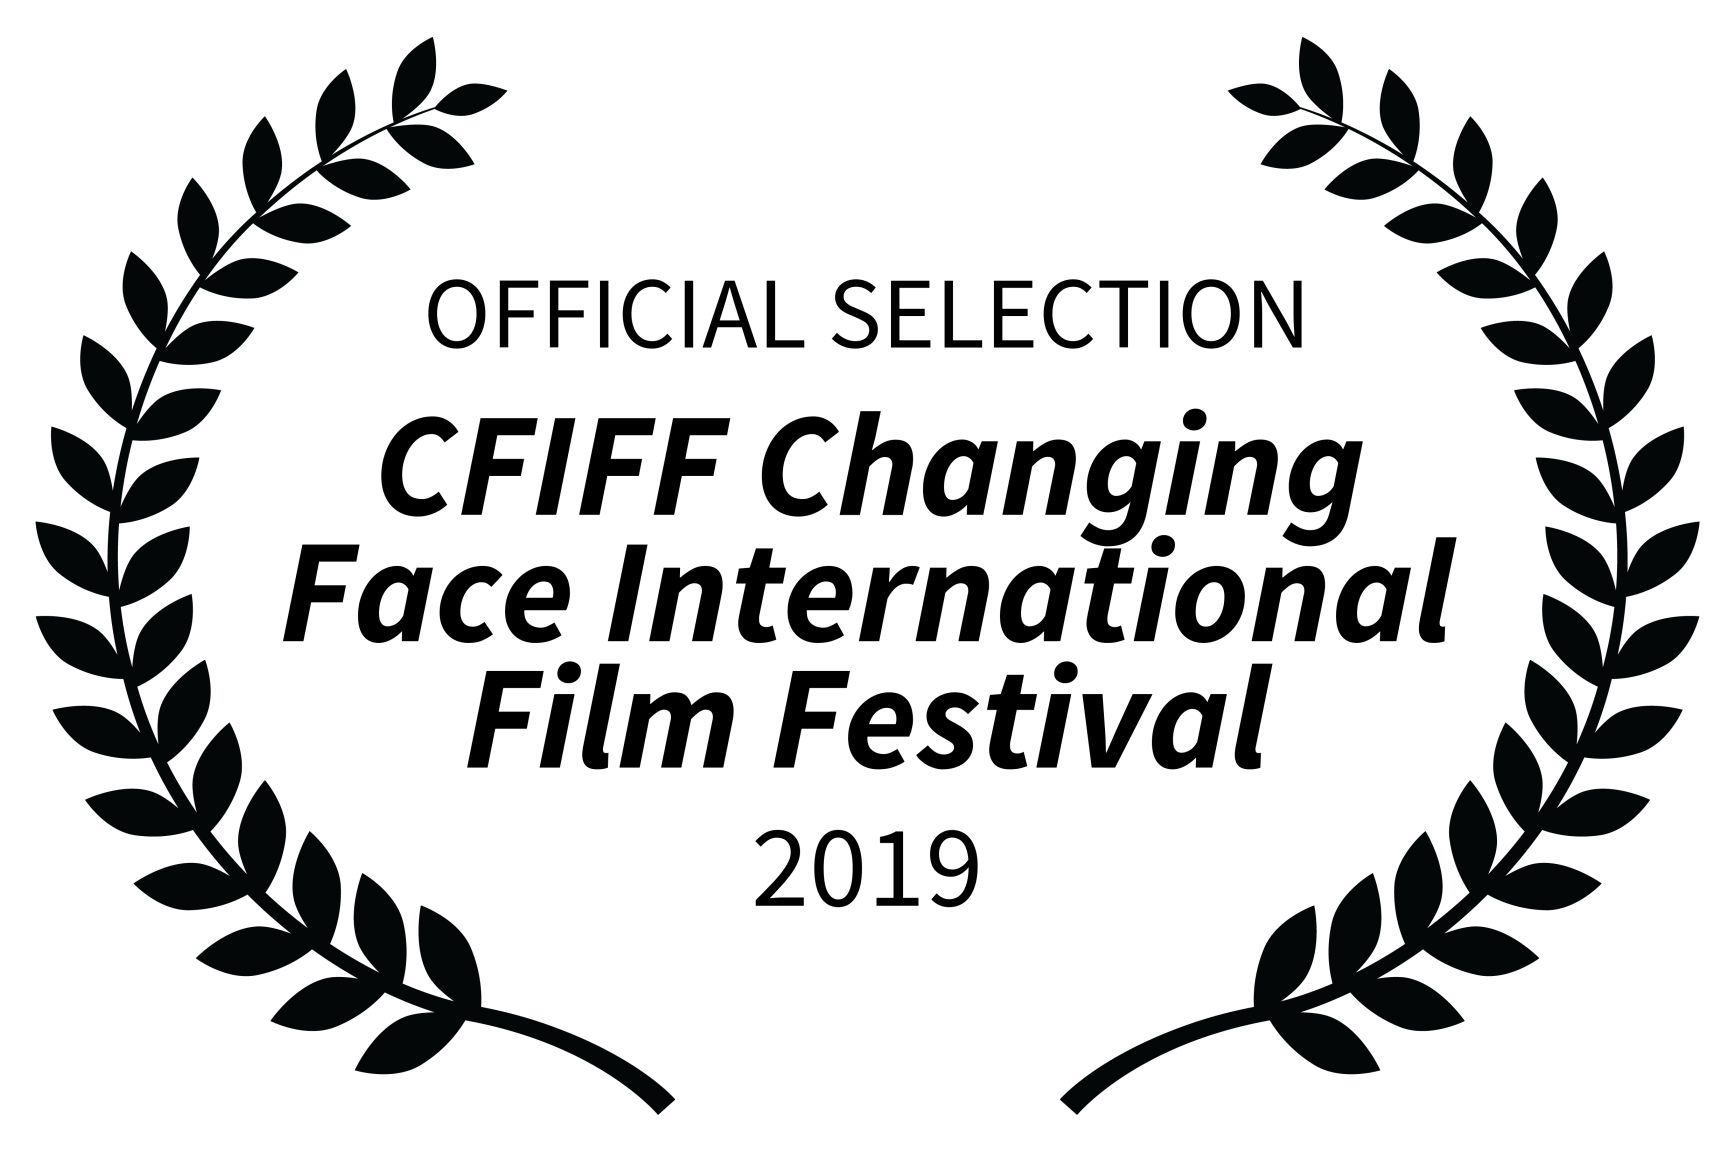 OFFICIAL SELECTION - CFIFF Changing Face International Film Festival - 2019